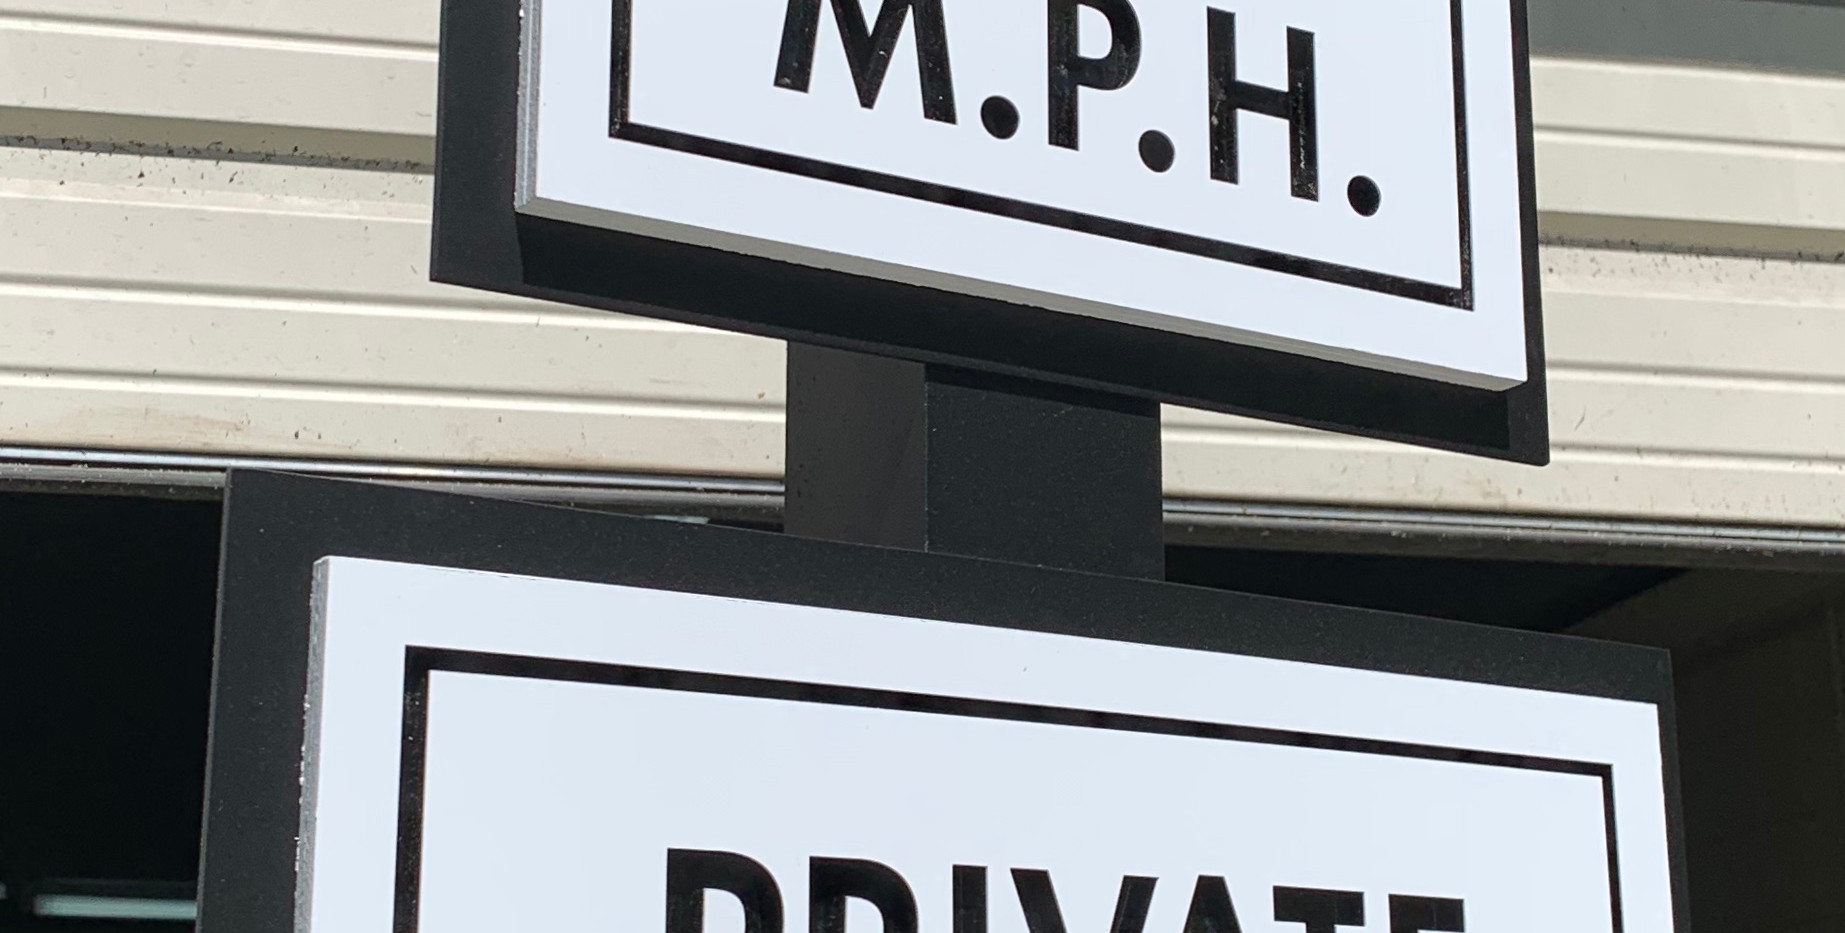 Speed Limit & Private Property Signs